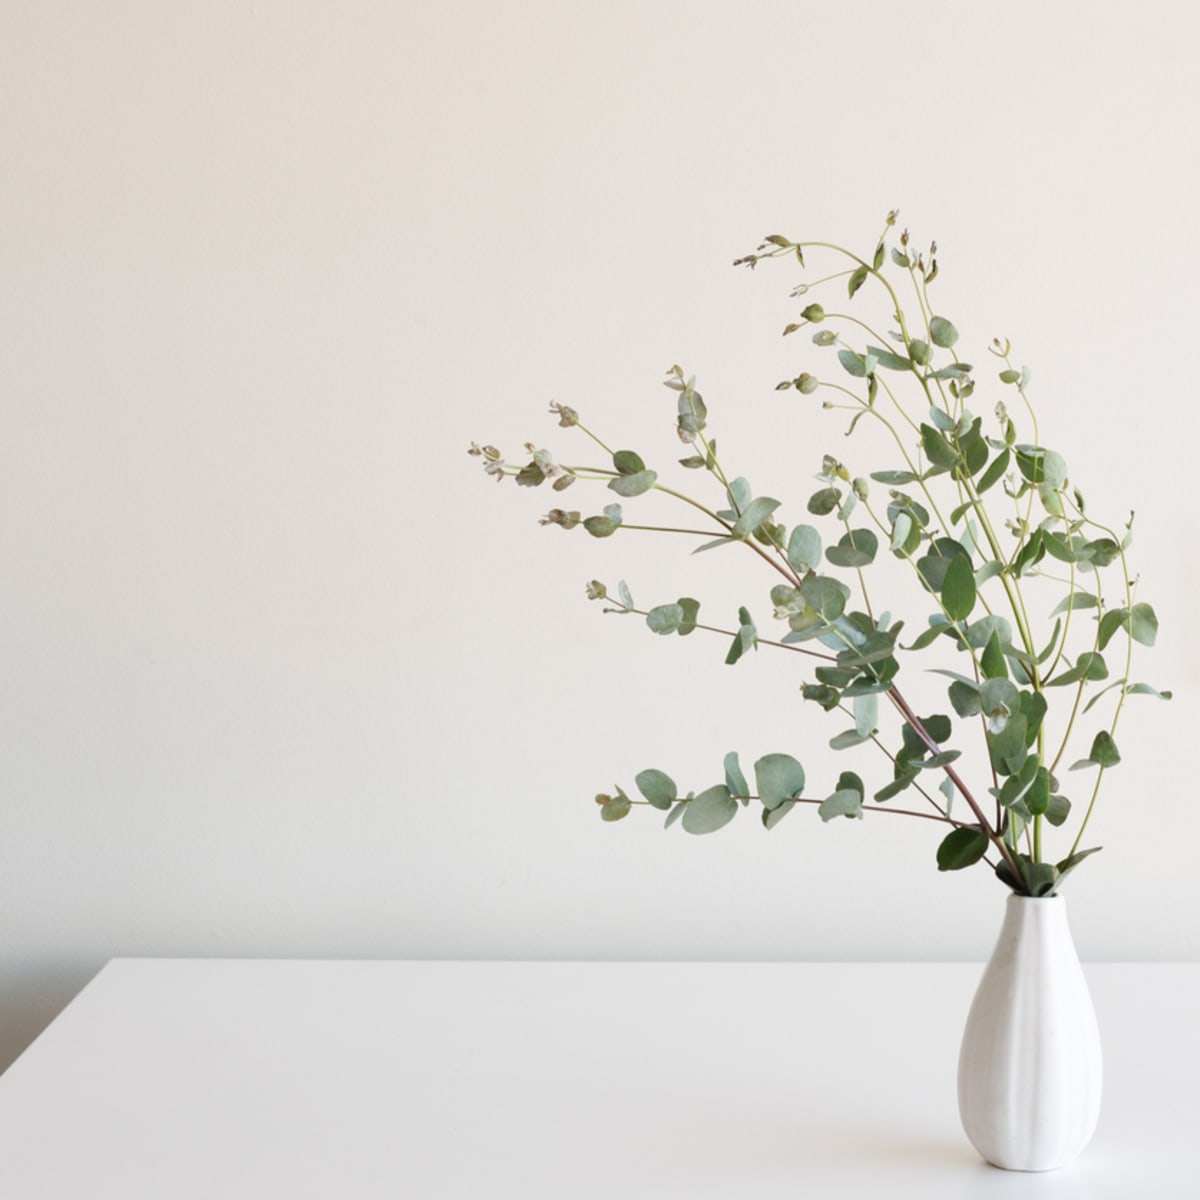 5 Eucalyptus Decorating Ideas For Your Healthy Home Organic Authority